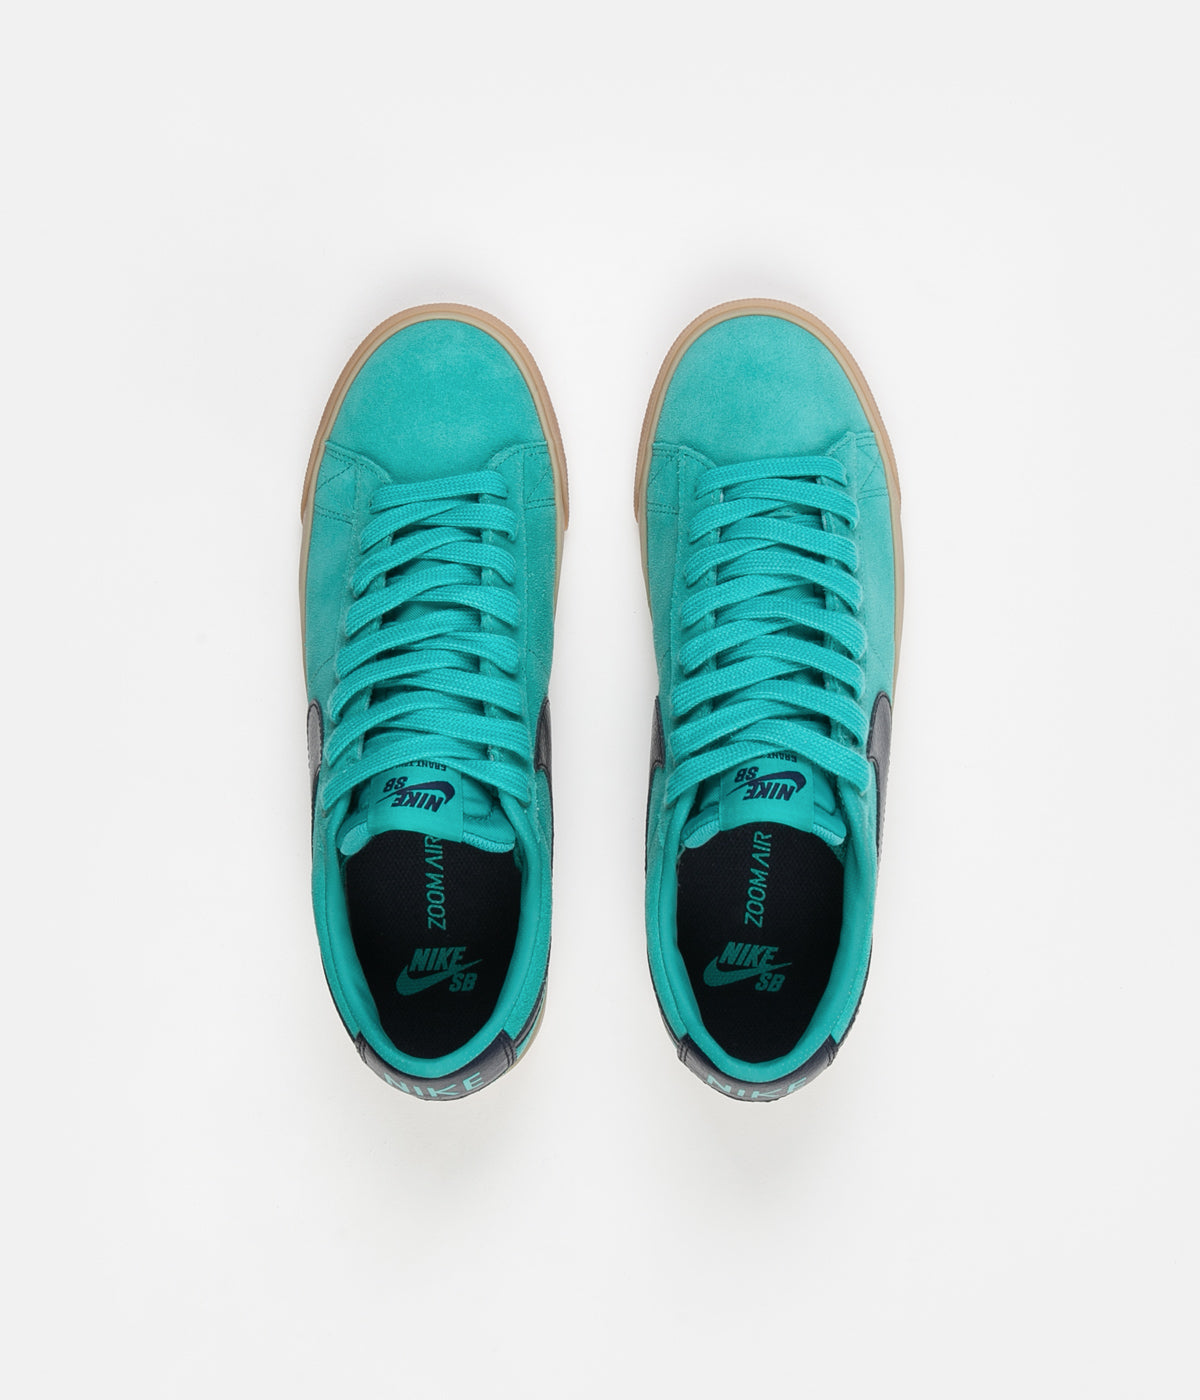 Nike SB Blazer Low GT Shoes - Cabana / Obsidian